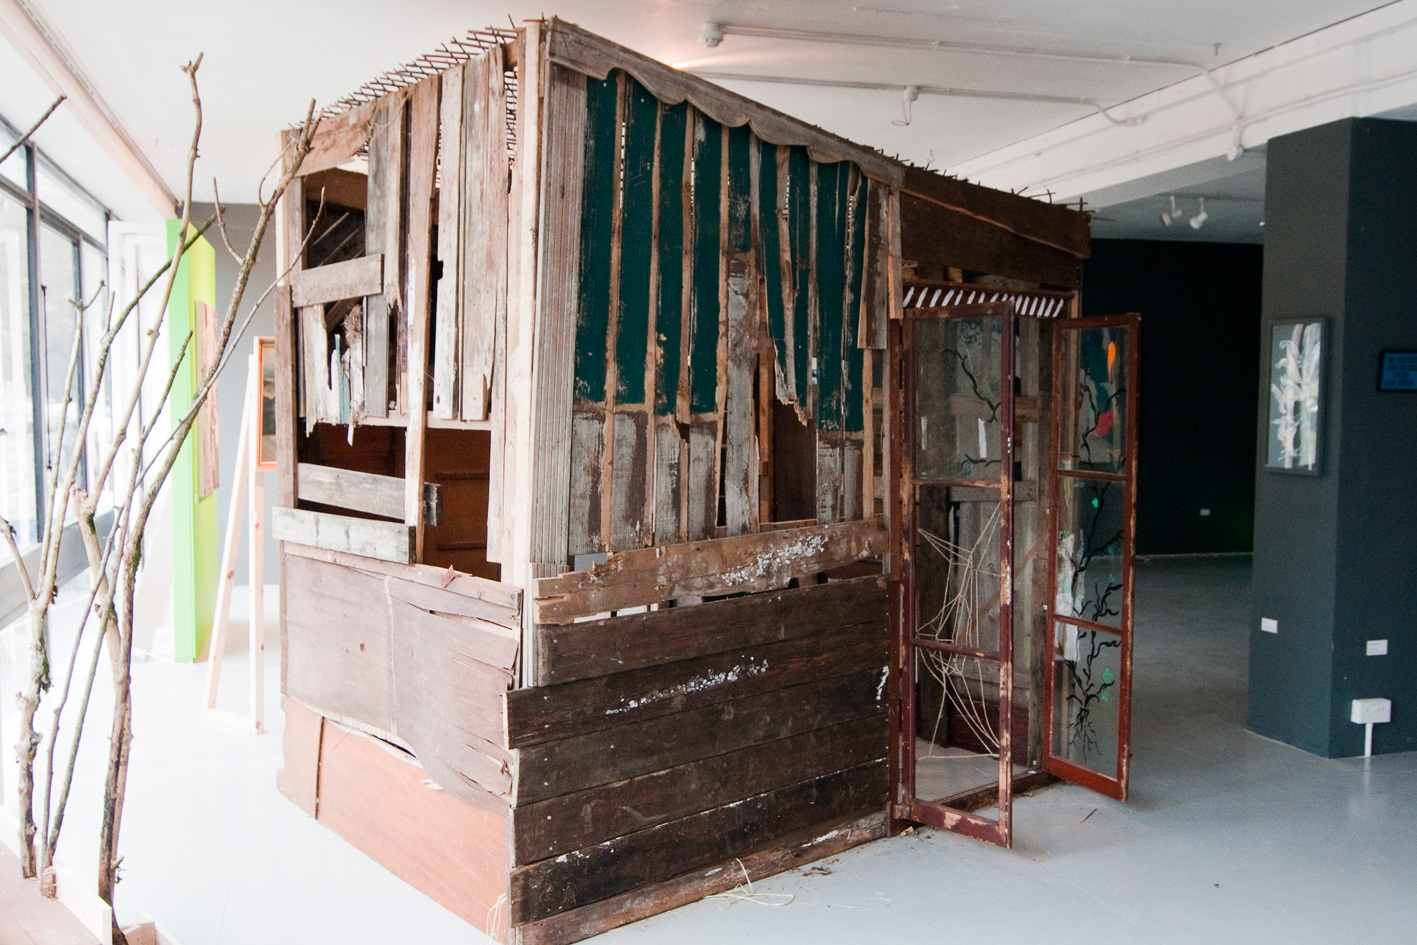 The Shed at 'Diastr' by Kate Duncan >  www.kateharmonyparker.blogspot.com